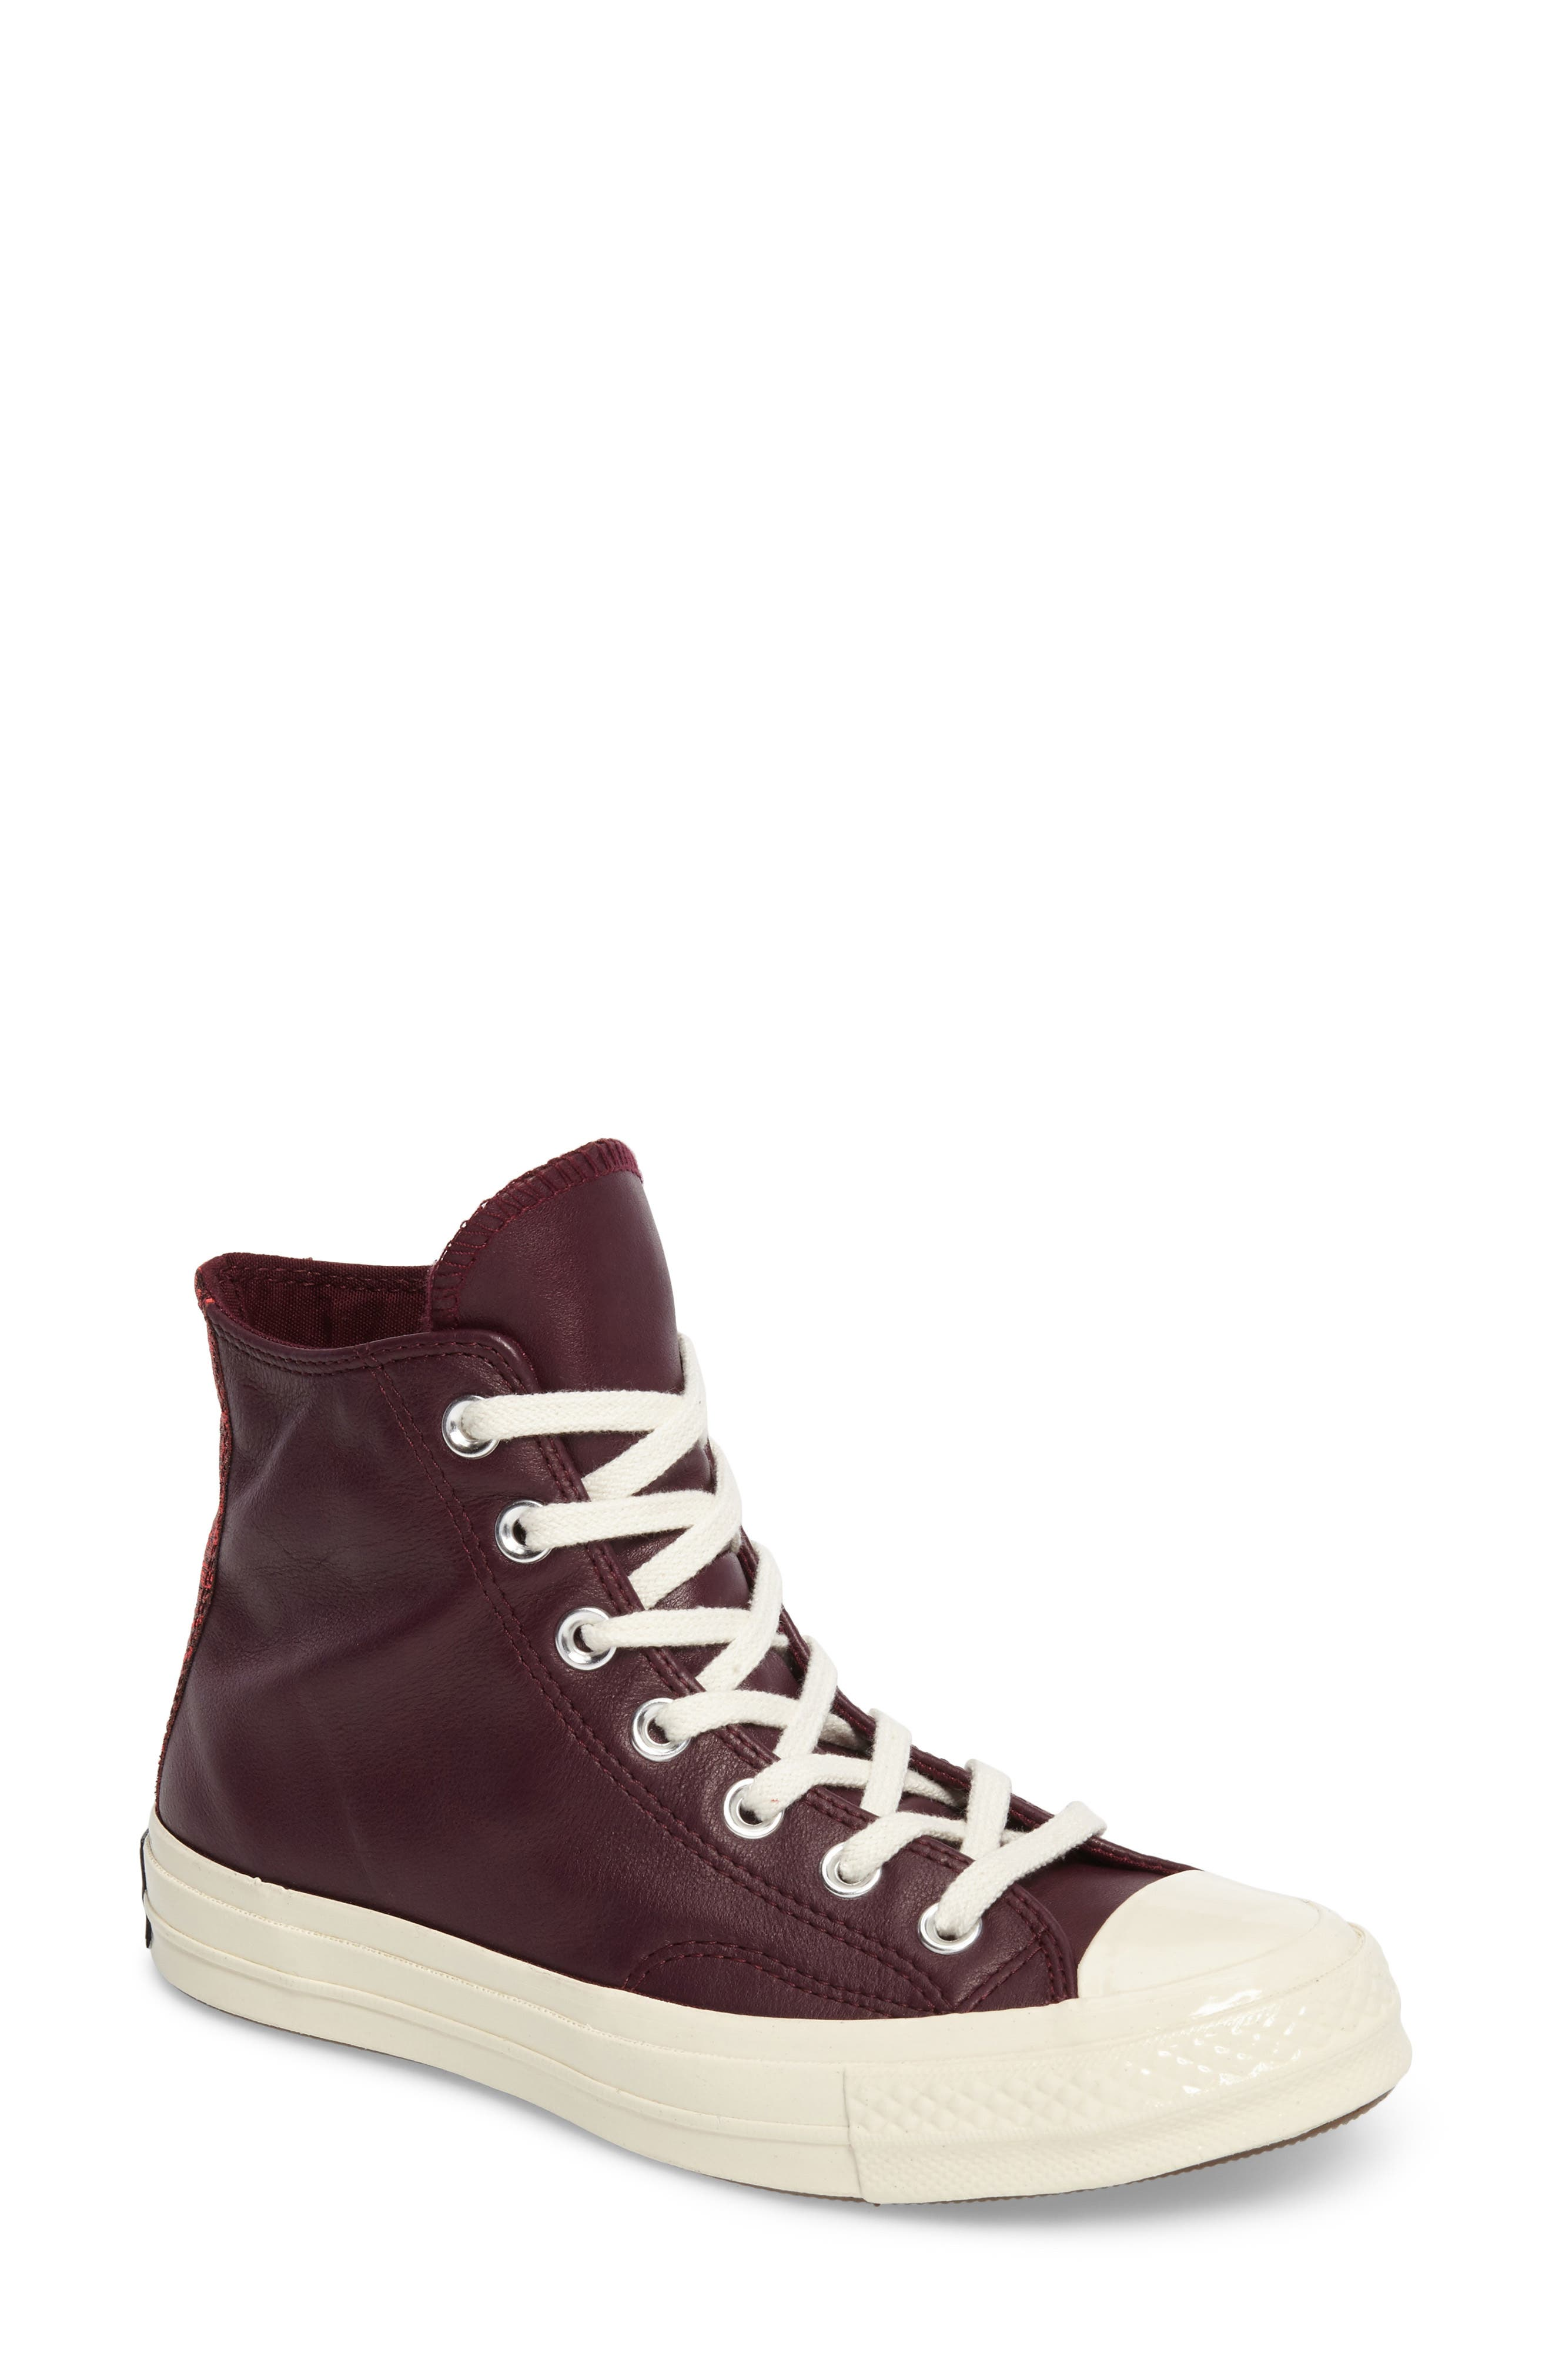 Alternate Image 1 Selected - Converse Chuck Taylor® All Star® 70 High Top Sneaker (Women)